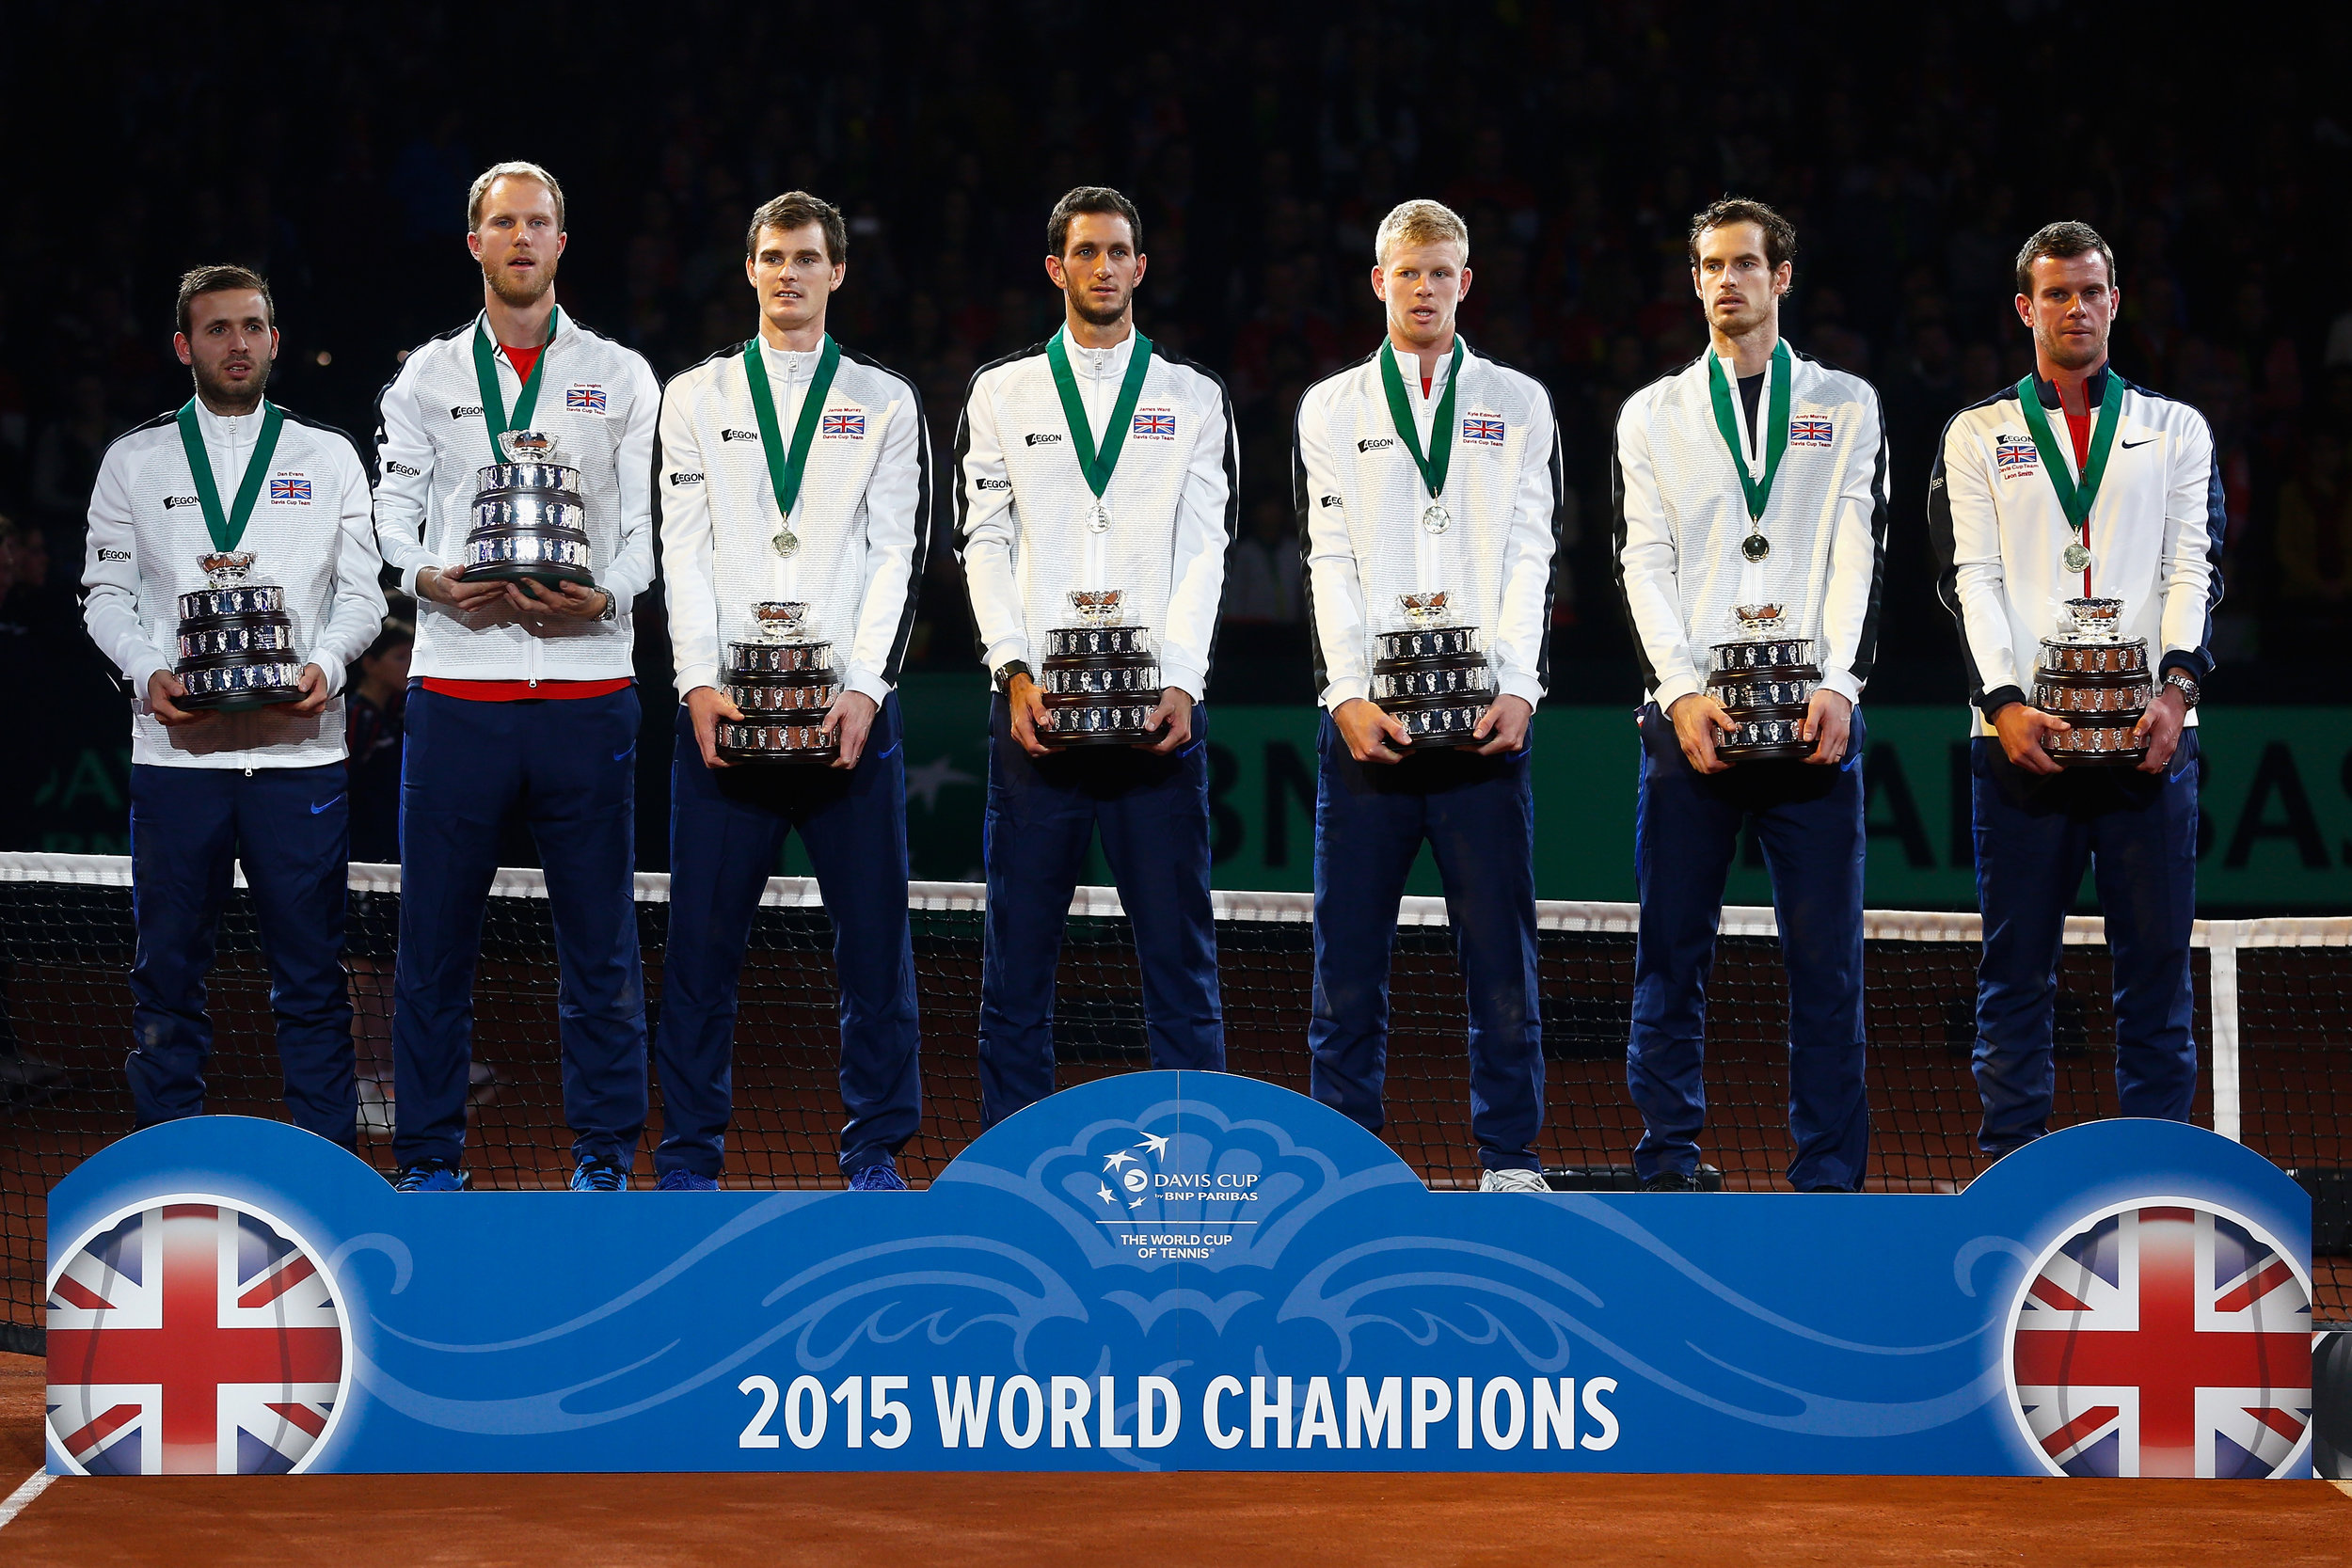 Davis Cup 2015 - team - GettyImages-499164332.jpg